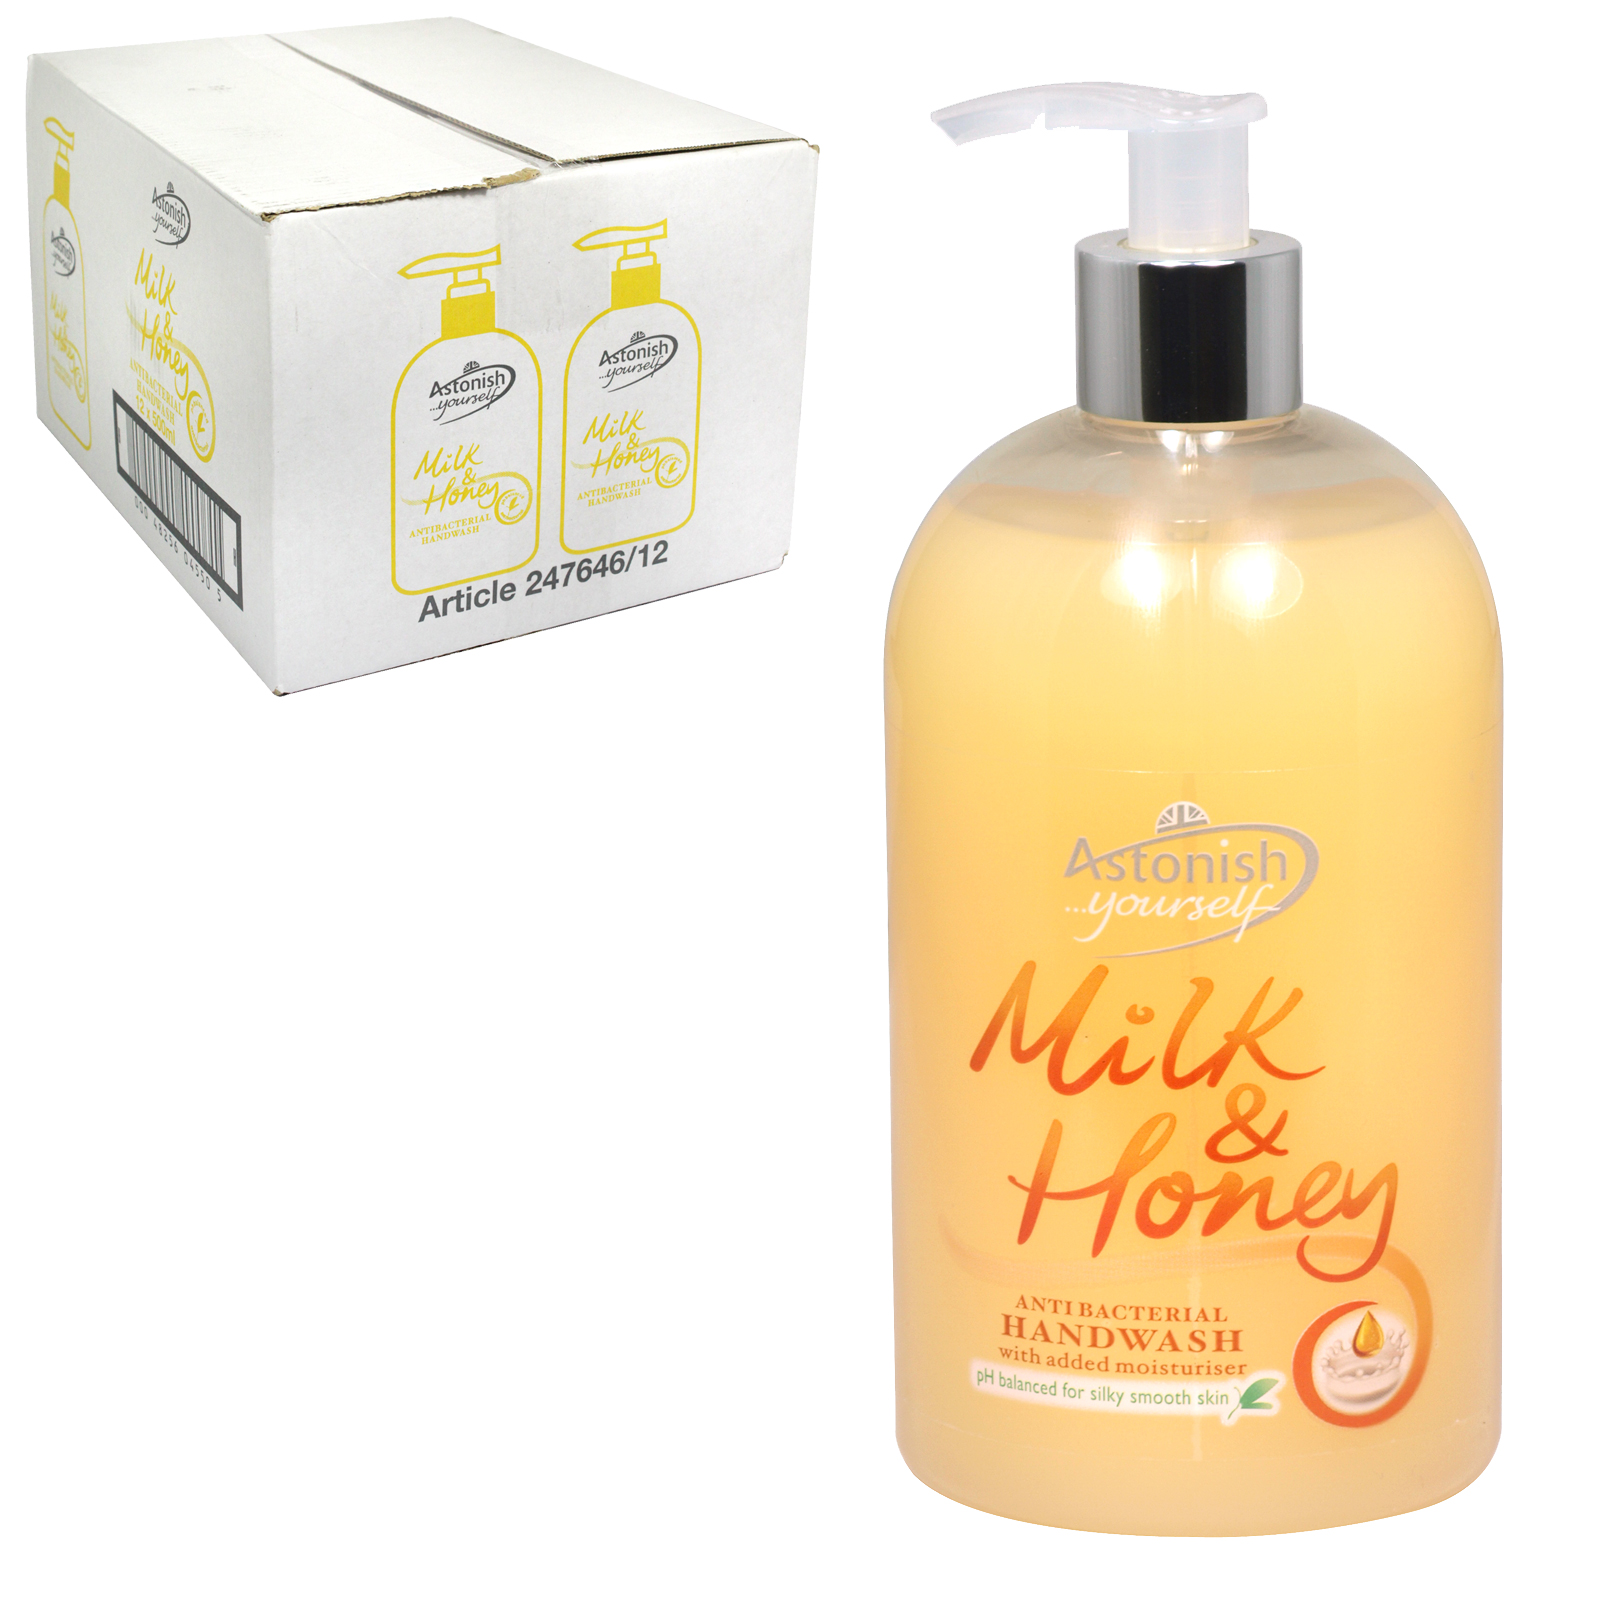 ASTONISH ANTI-BAC HANDWASH 500ML MILK+HONEY X12